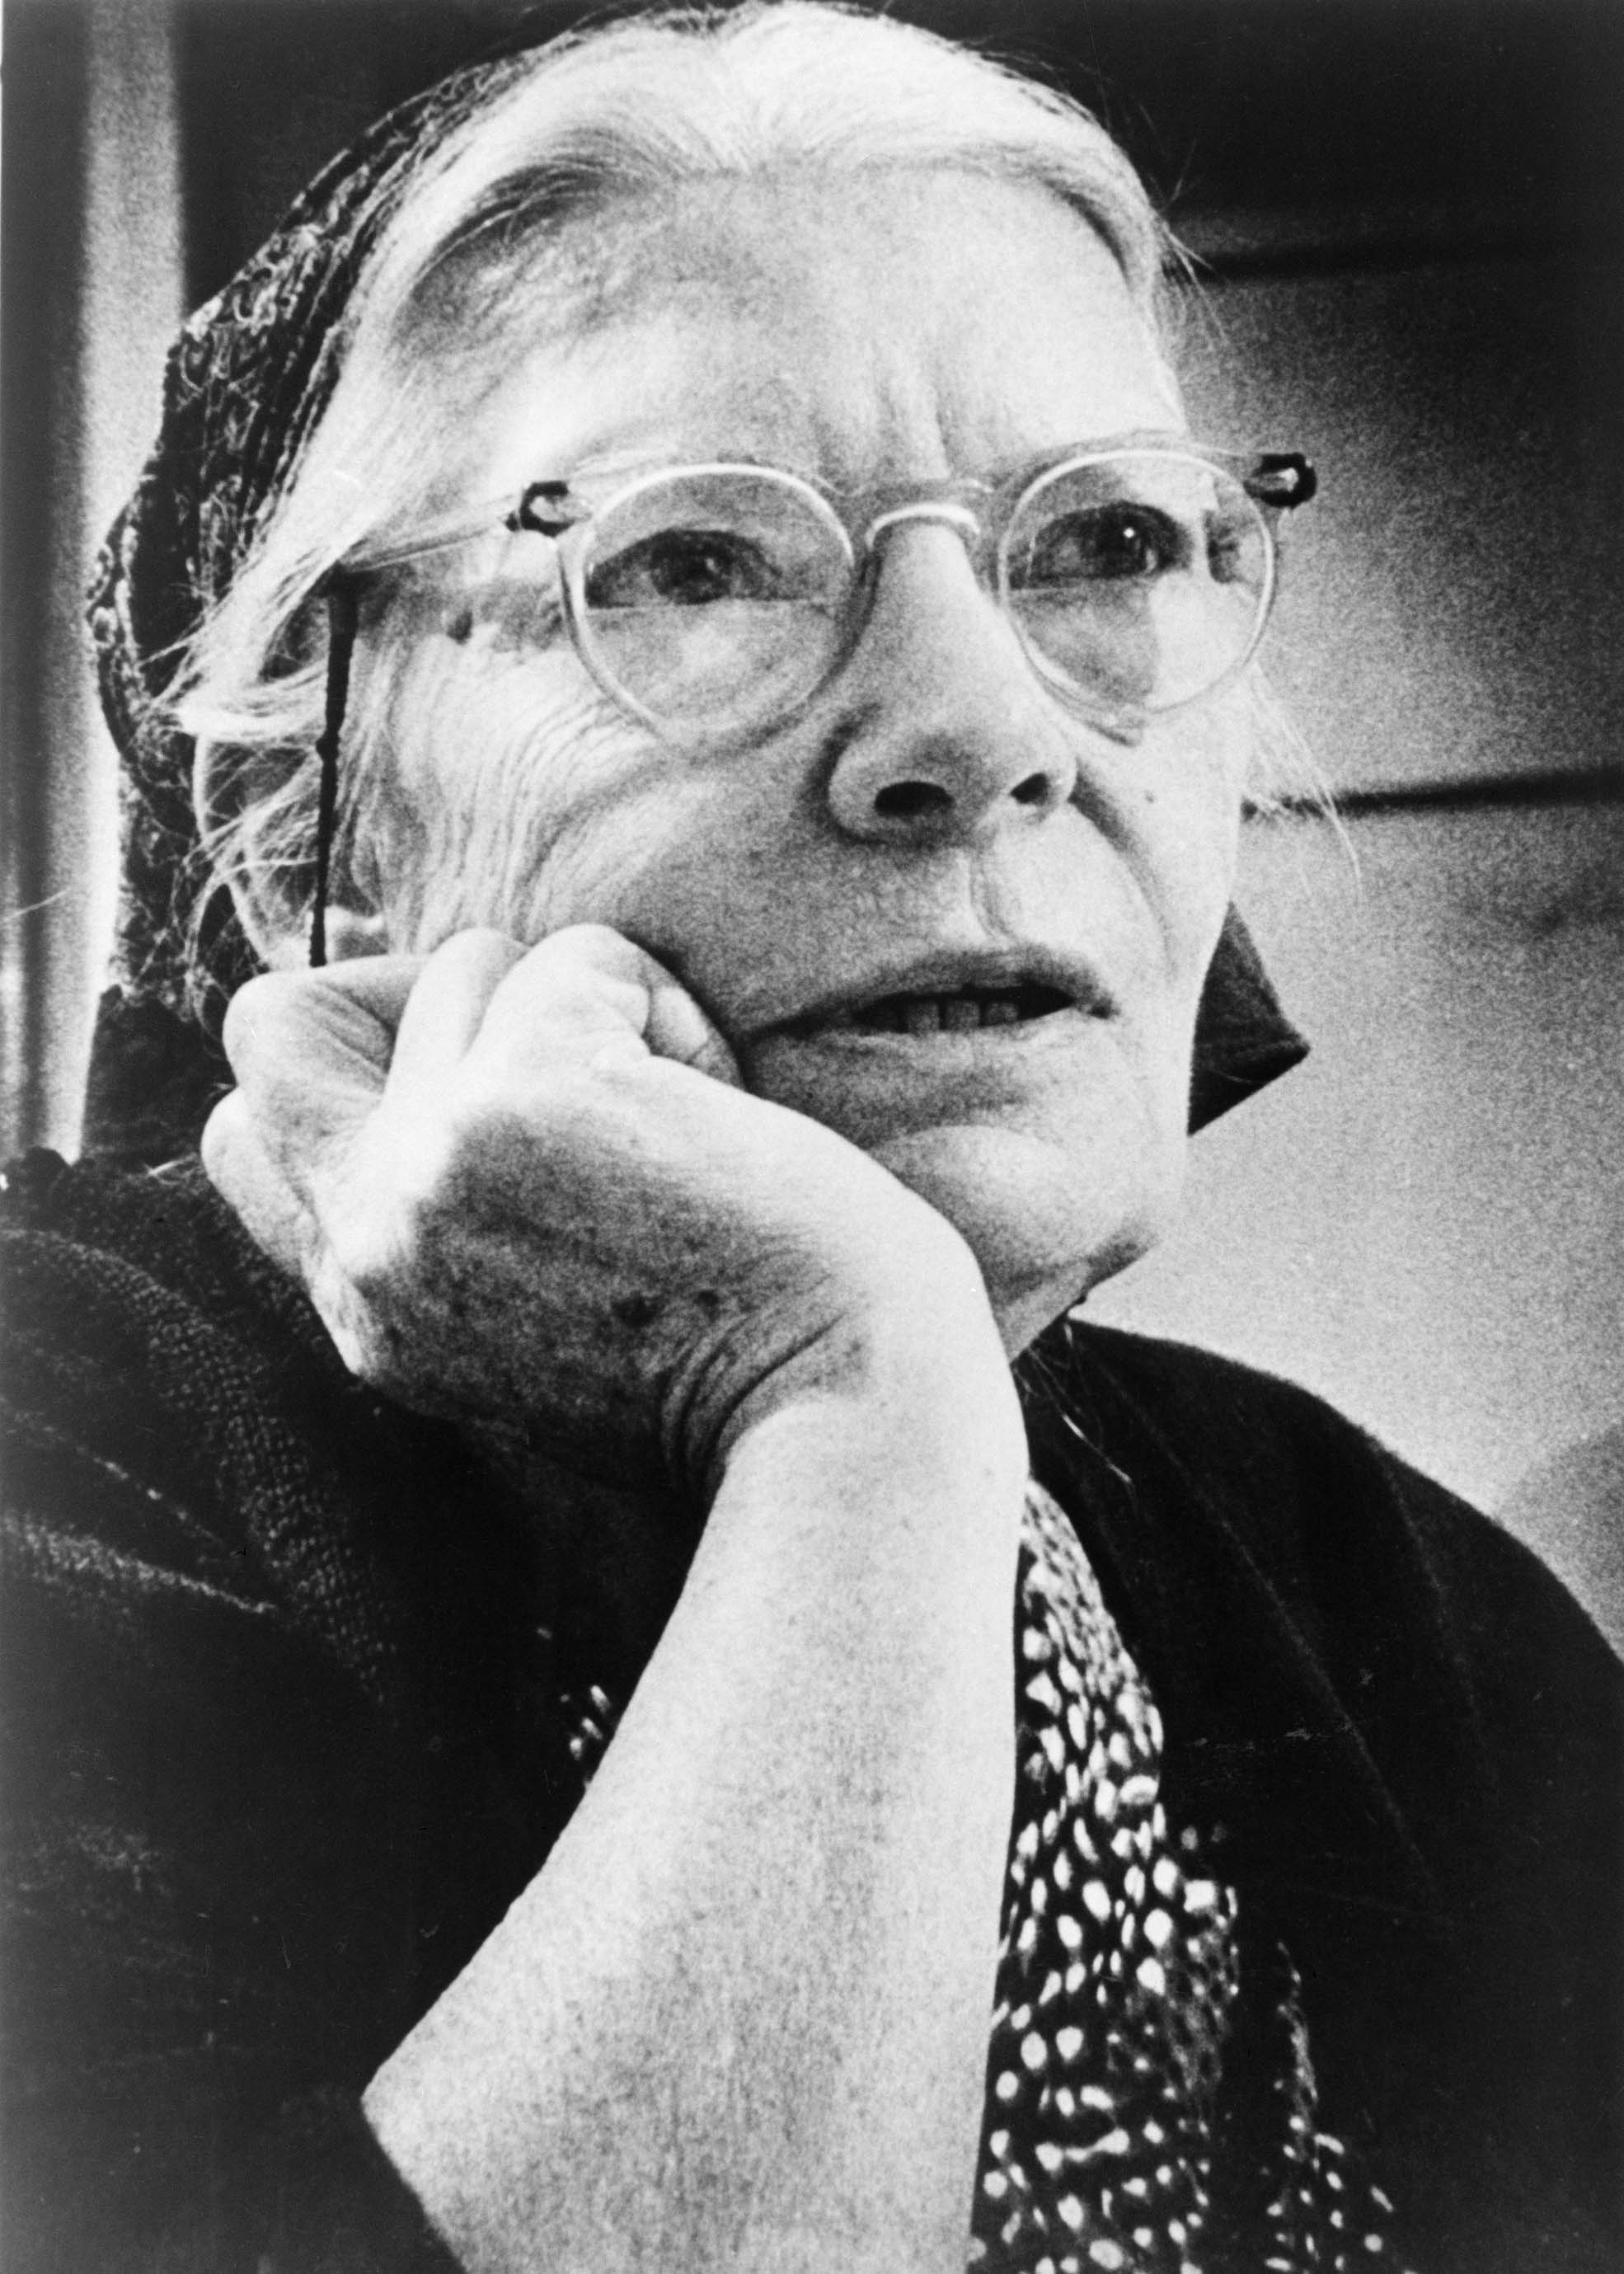 dorothy day essays Dorothy day, saint-worthy almost immediately after her death in 1980 controversy arose about whether dorothy day should be canonized a saint by the church.